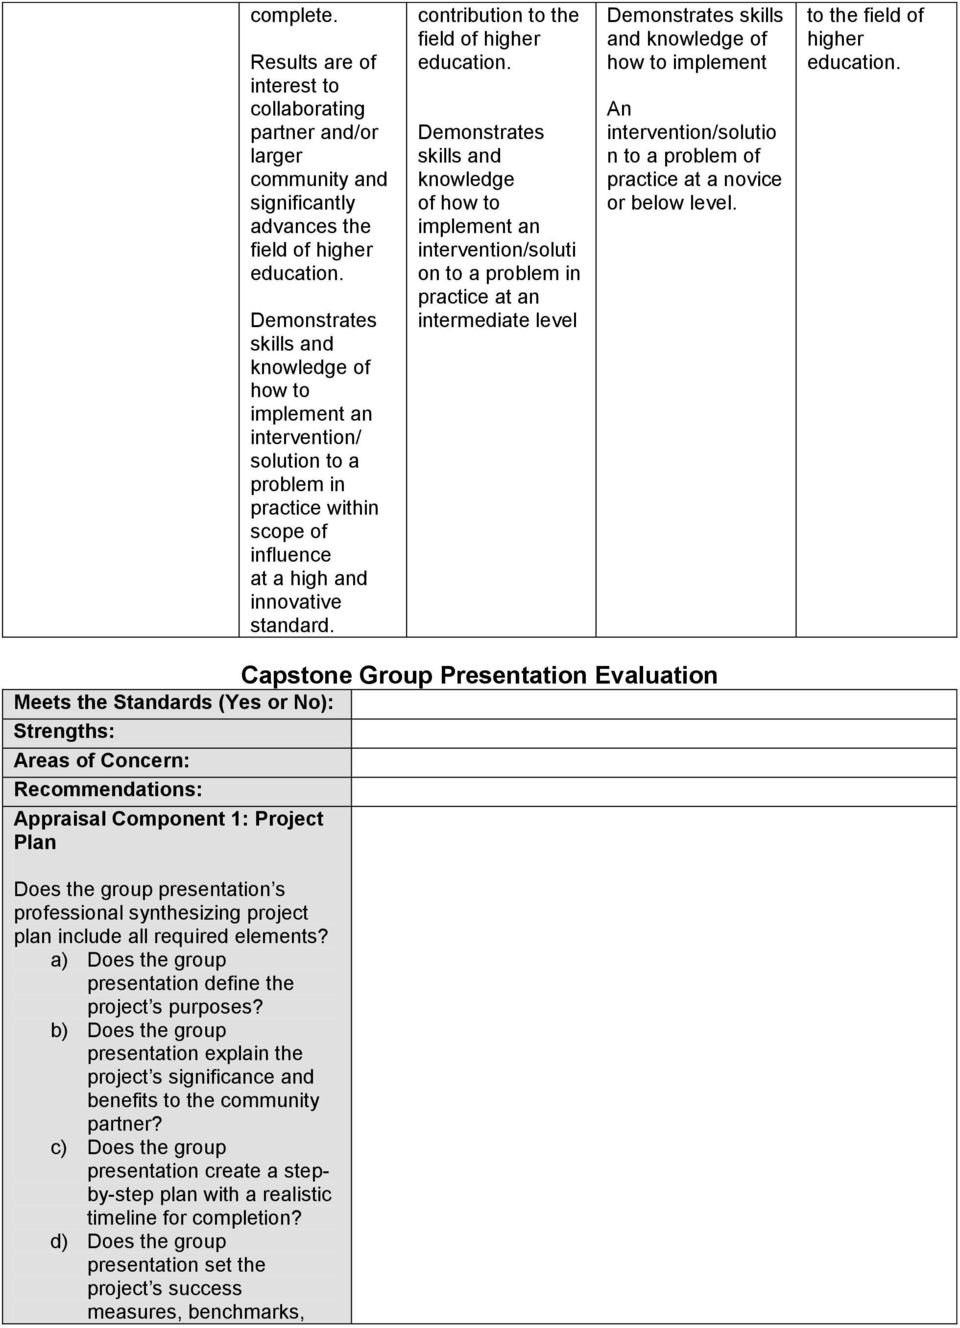 skills and knowledge of how to implement an intervention/soluti on to a problem in practice at an intermediate level skills and knowledge of how to implement An intervention/solutio n to a problem of